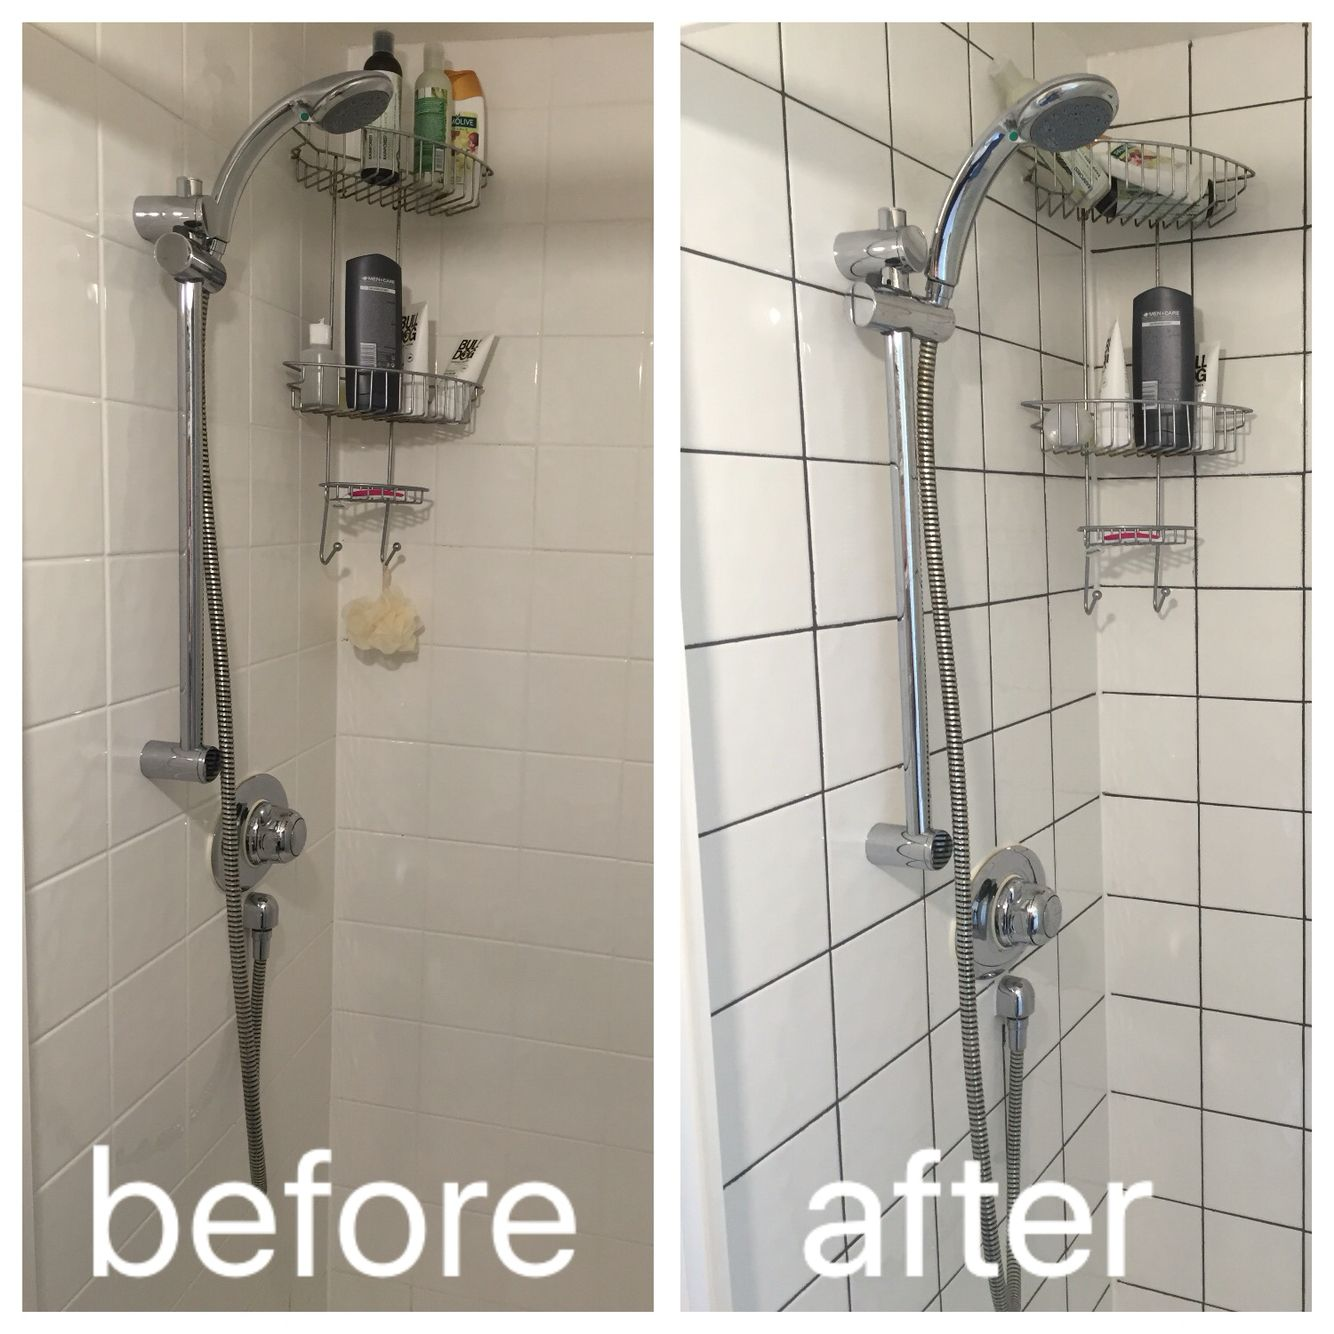 Regrouting With Dark Grey Grout To Modernise A Boring Shower - Regrouting bathroom shower tile